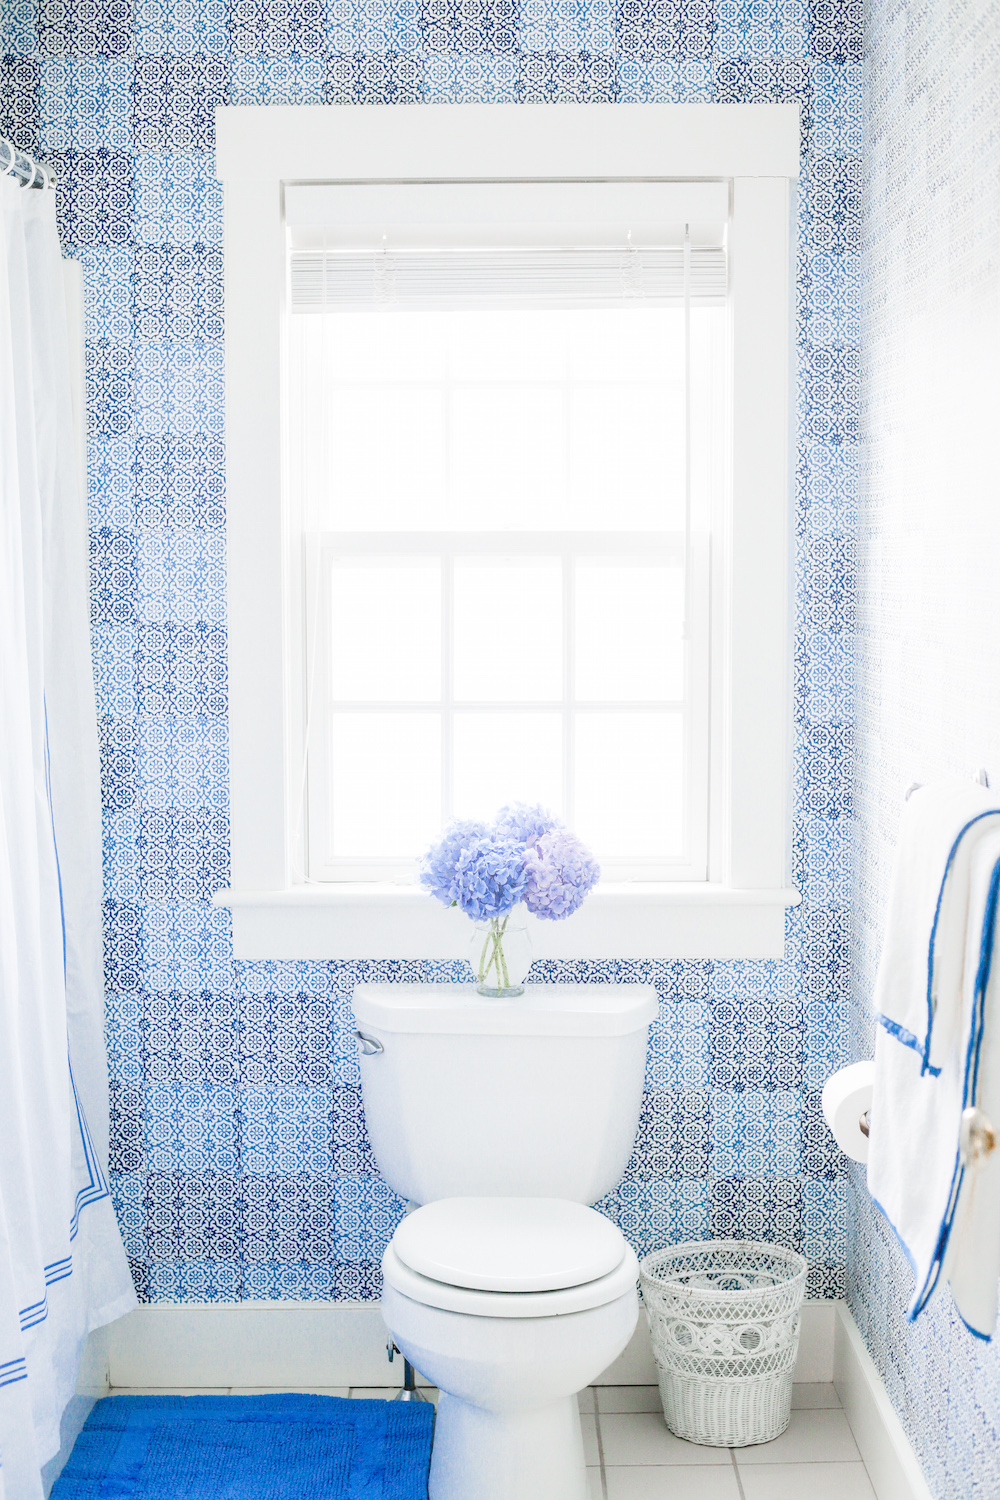 Peter Fasano Sintra Wallpaper Pine Cone Hill Trio French Blue Shower Curtain Signature Banded White Towels